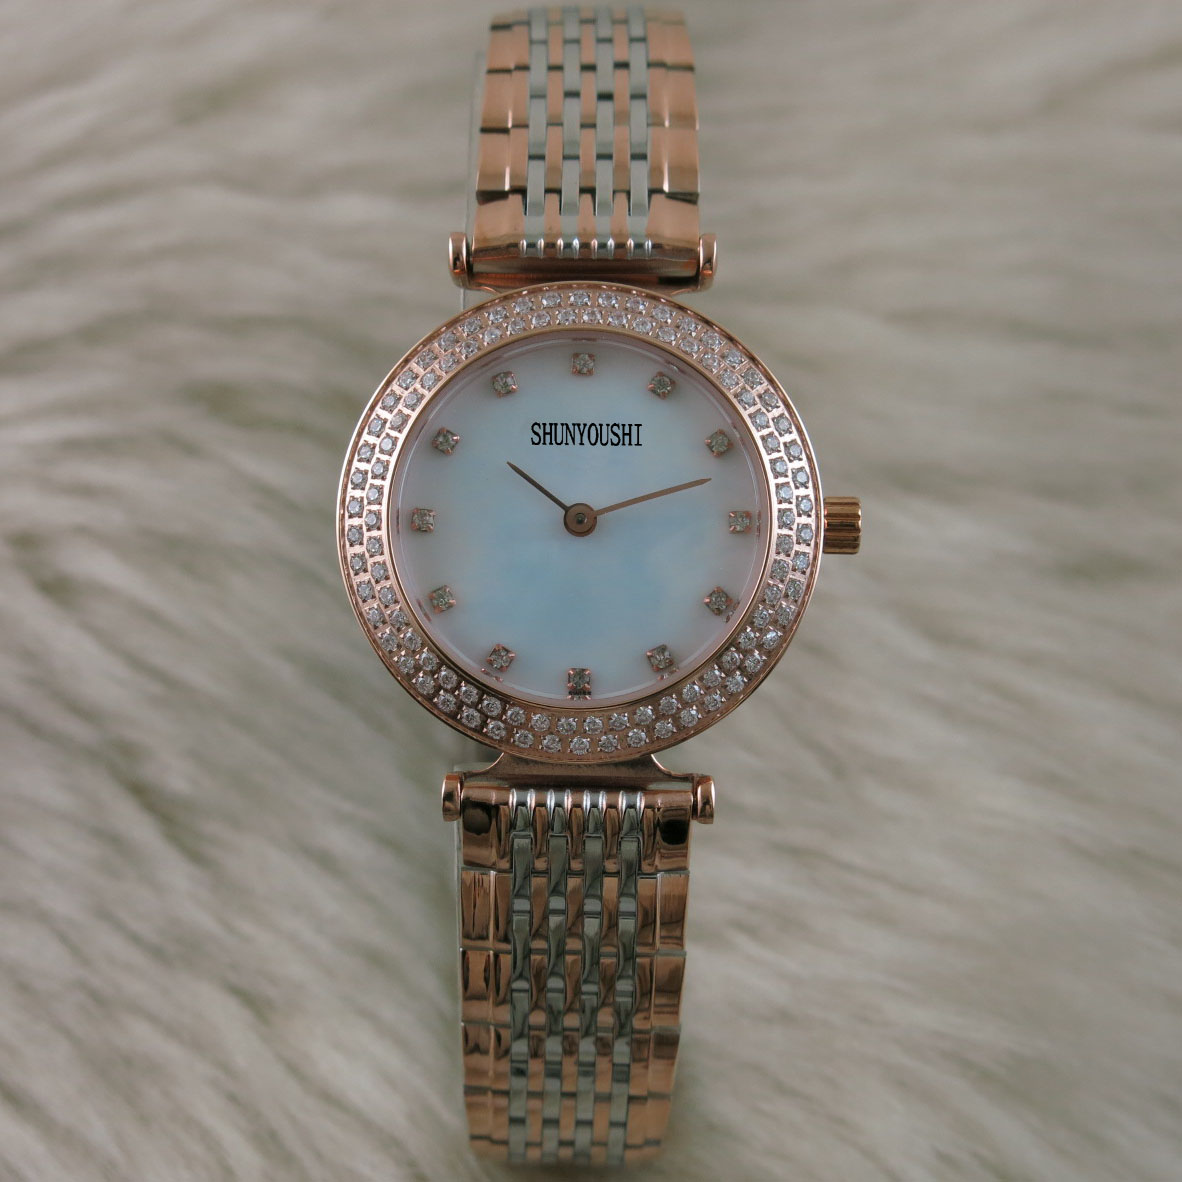 A05166   Womens Watches Top Brand Runway Luxury European Design  Quartz WristwatchesA05166   Womens Watches Top Brand Runway Luxury European Design  Quartz Wristwatches